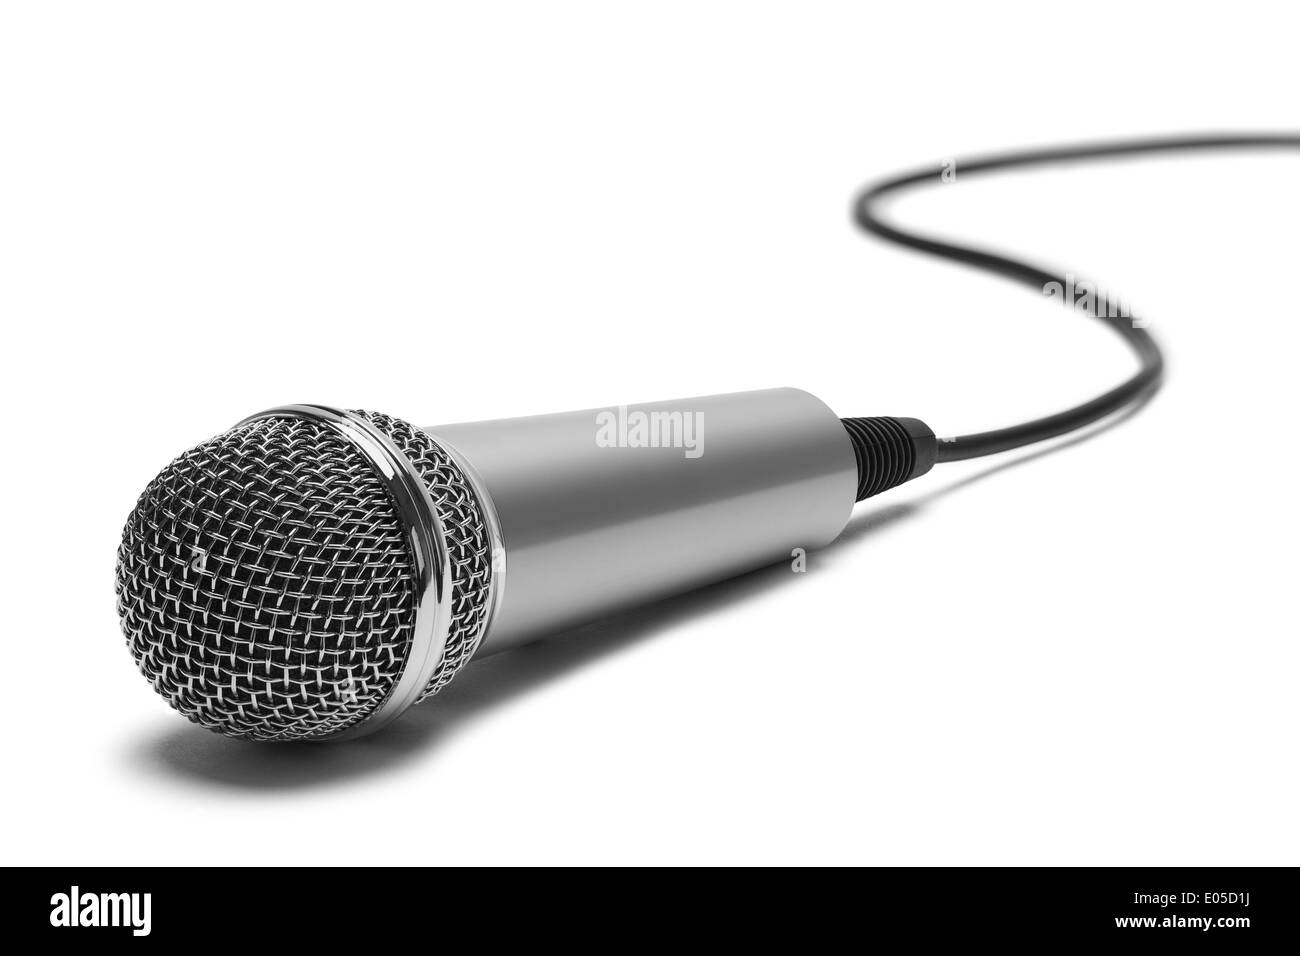 Silver Music Microphone with Cord Isolated on White Background. - Stock Image